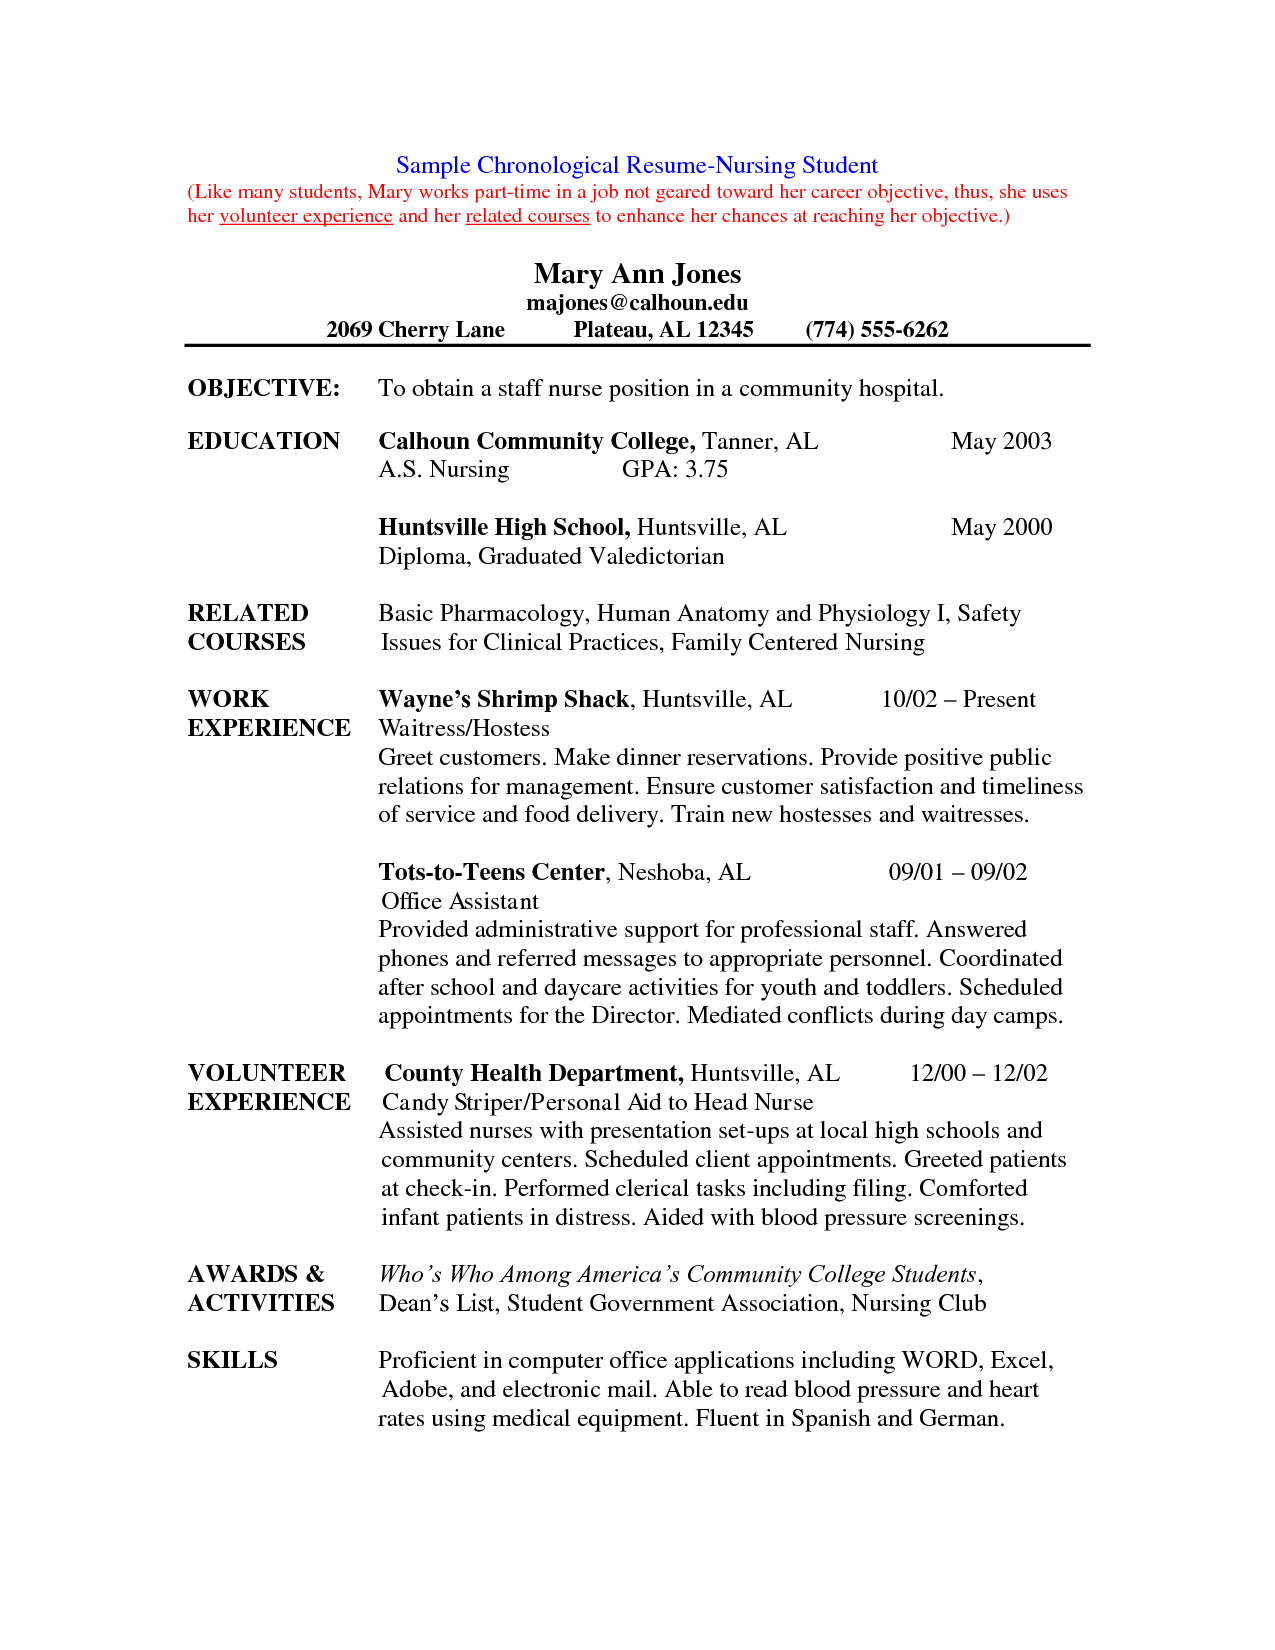 nursing student resume template hdresume templates cover letter examples - Sample Cover Letter For Nursing Resume